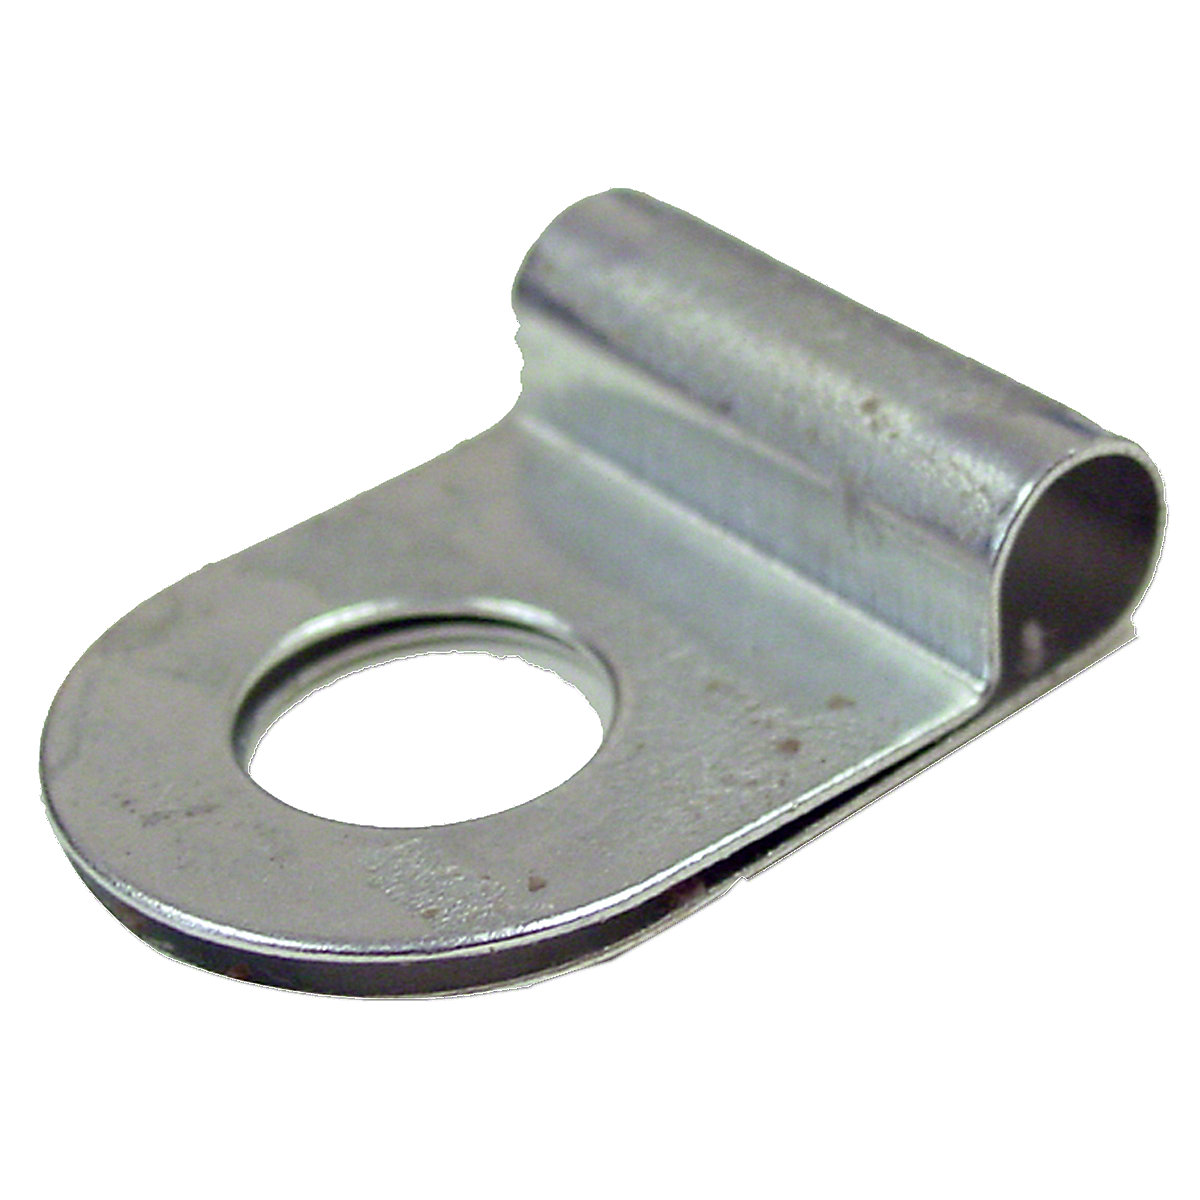 Wiring Clip For Massey Ferguson: TE20, TO20, TO30, 202, 203, 204, 205, 65, 40, 35, 50.